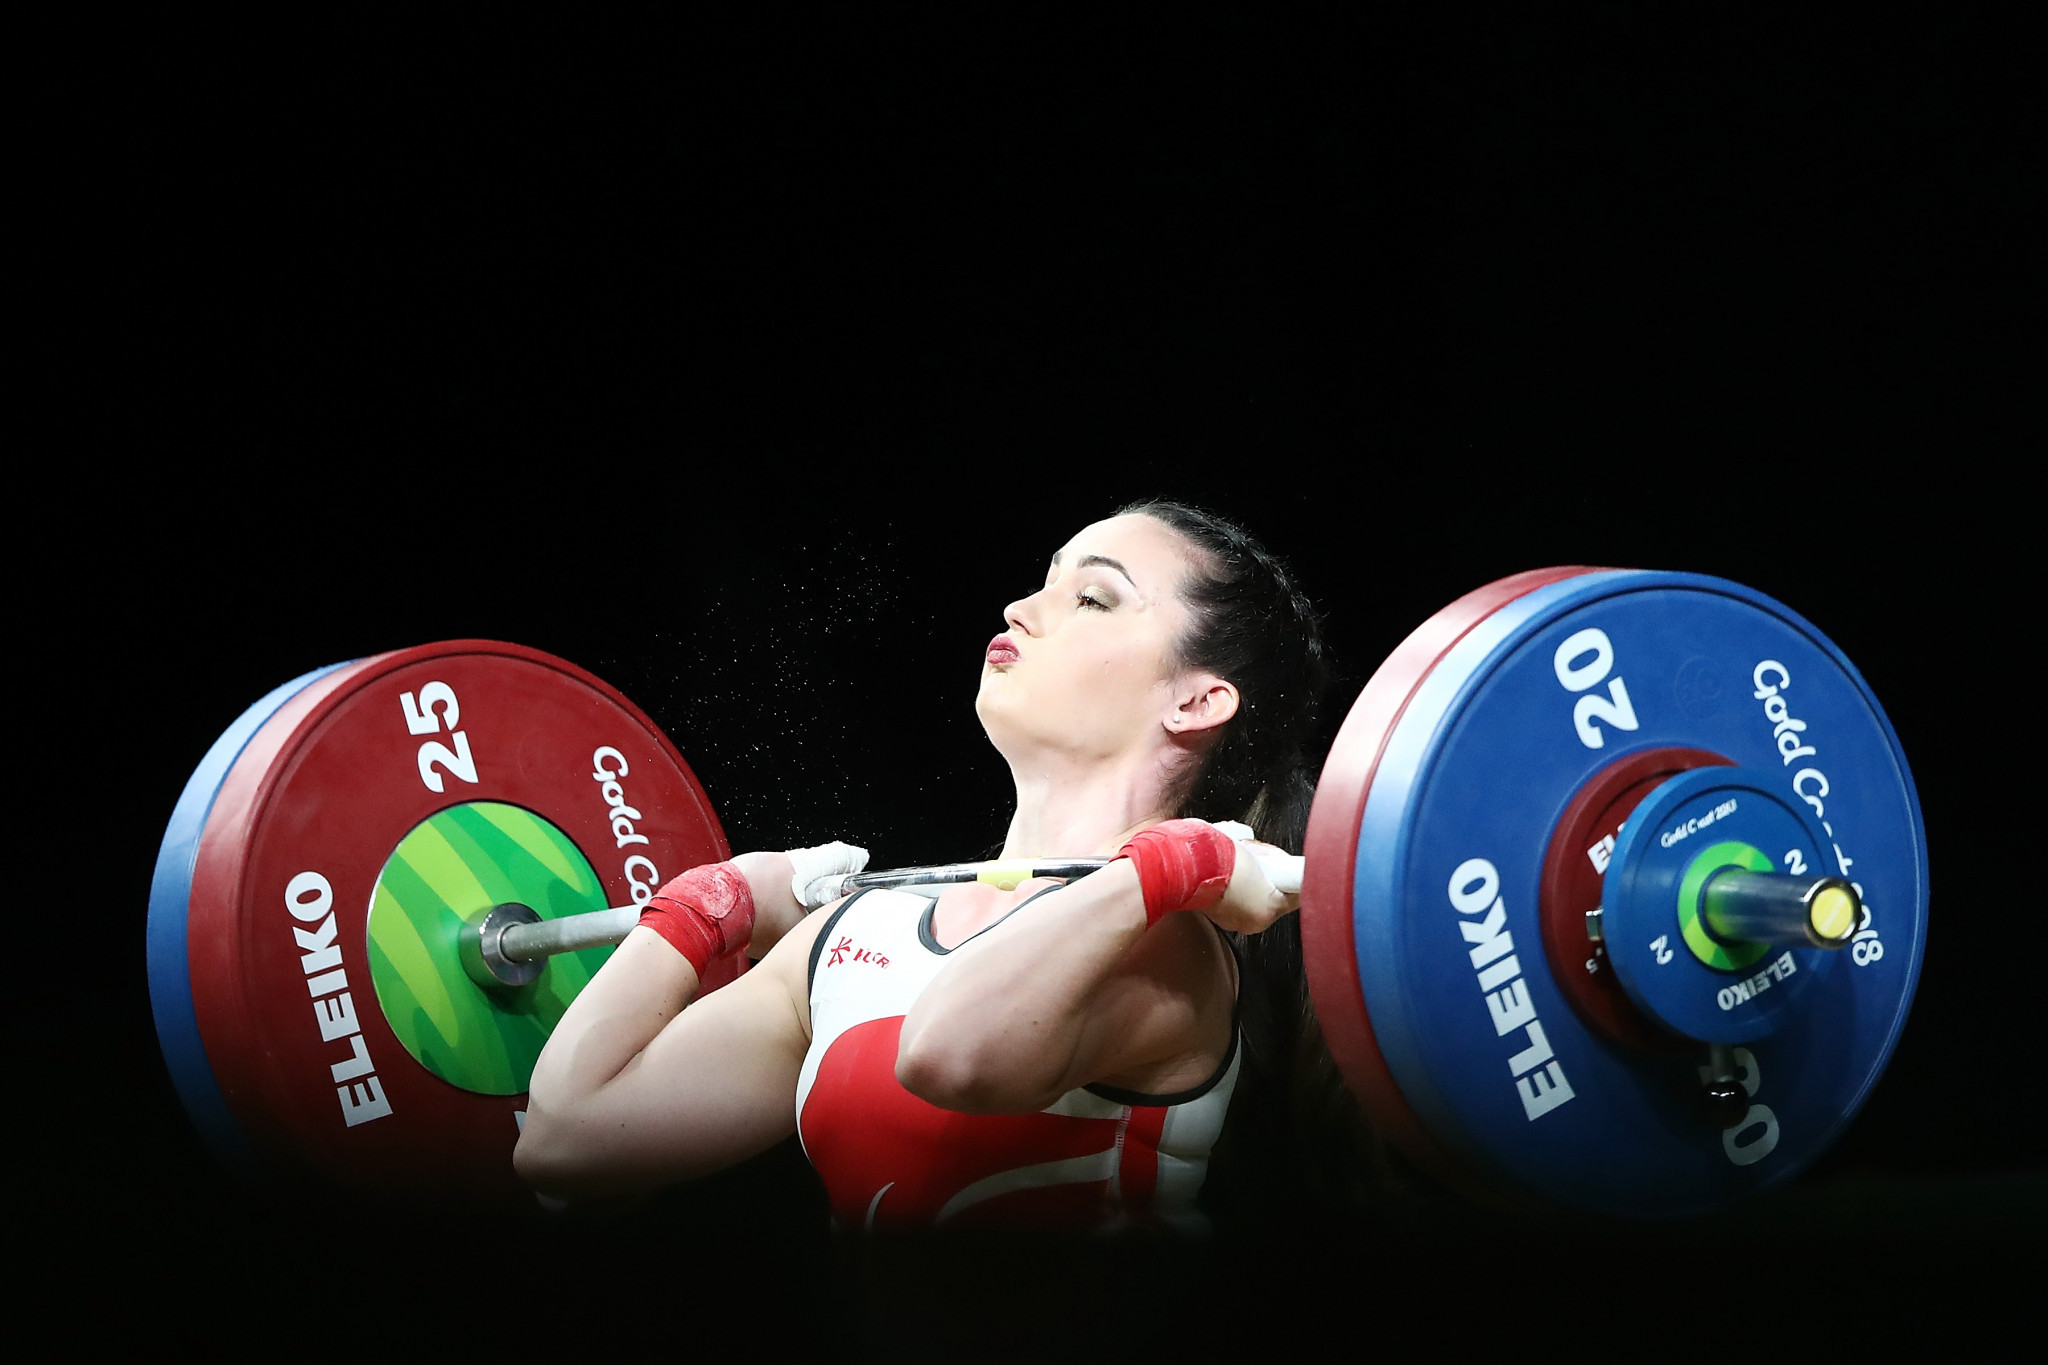 Sarah Davies, chair of the IWF Athletes' Commission, called for athletes to be given more of a say in governance issues ©Getty Images